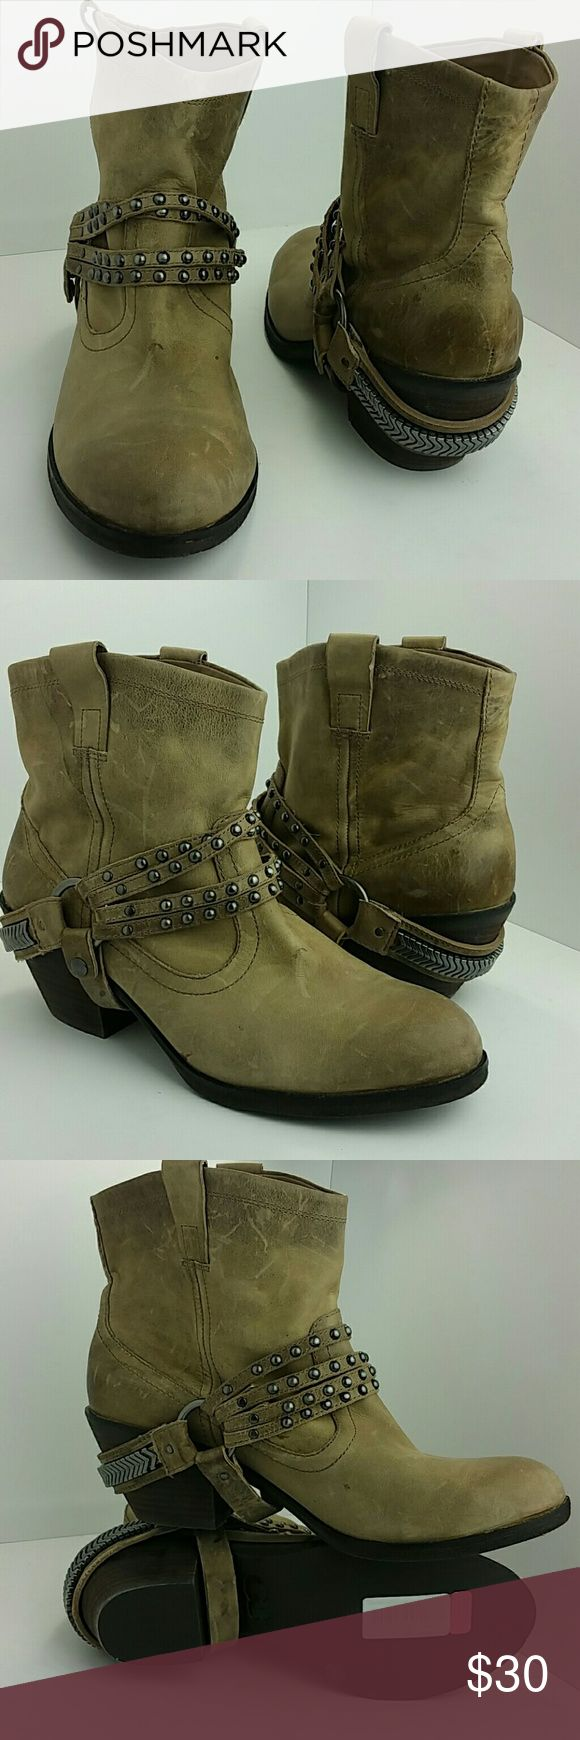 GIANNI BINI BOOTIE VERY CLEAN INSIDE-OUT   SKE # KM7 Gianni Bini Shoes Ankle Boots & Booties